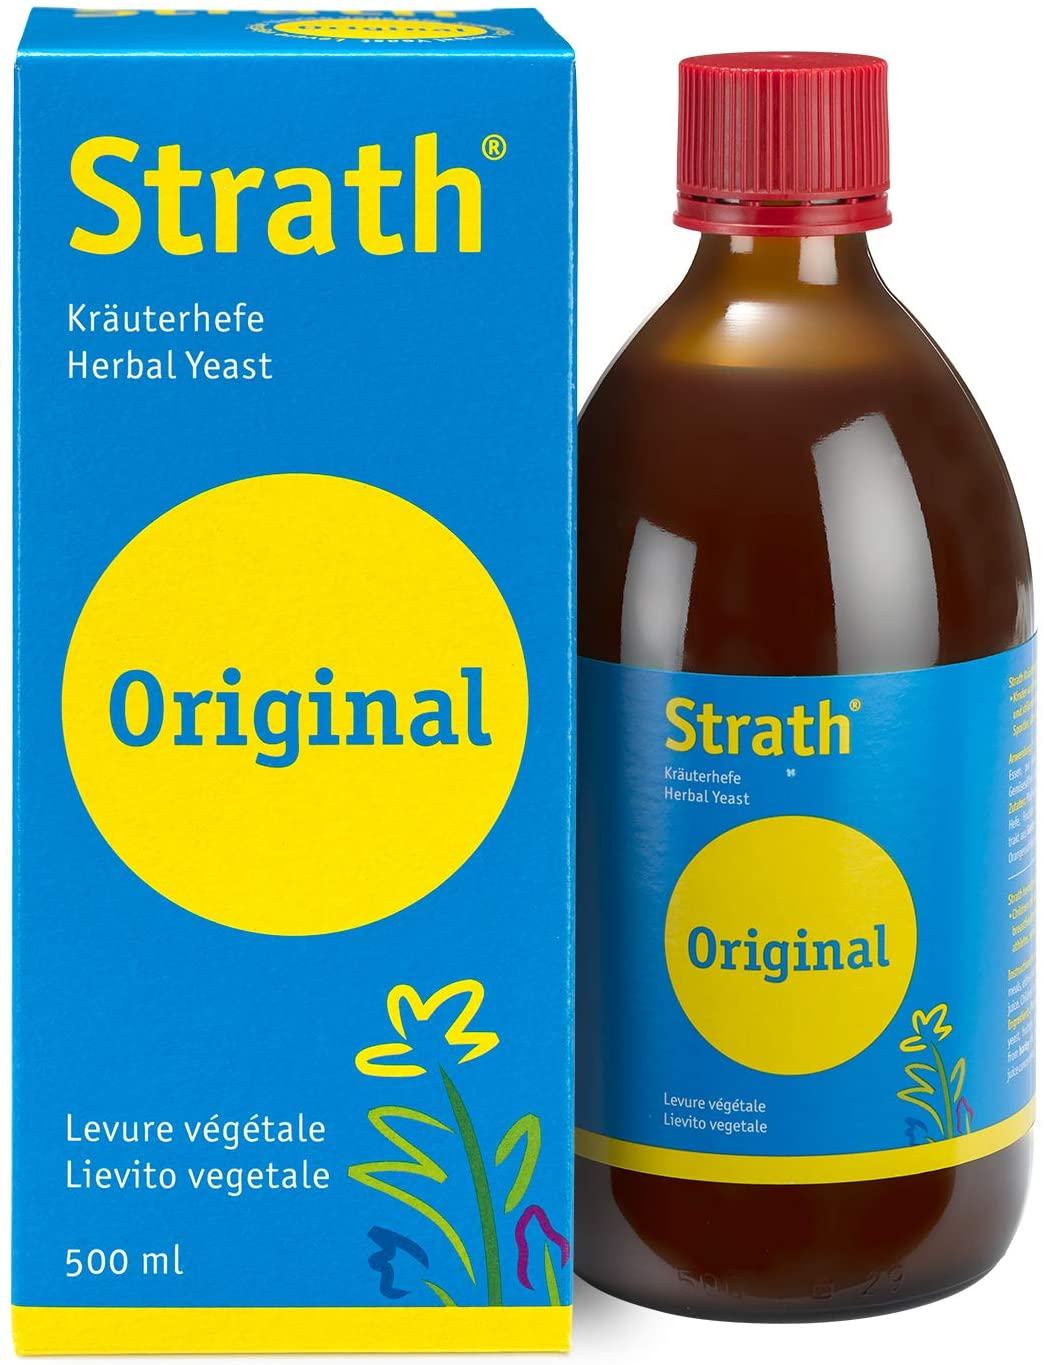 Strath Herbal Yeast Original 250ml